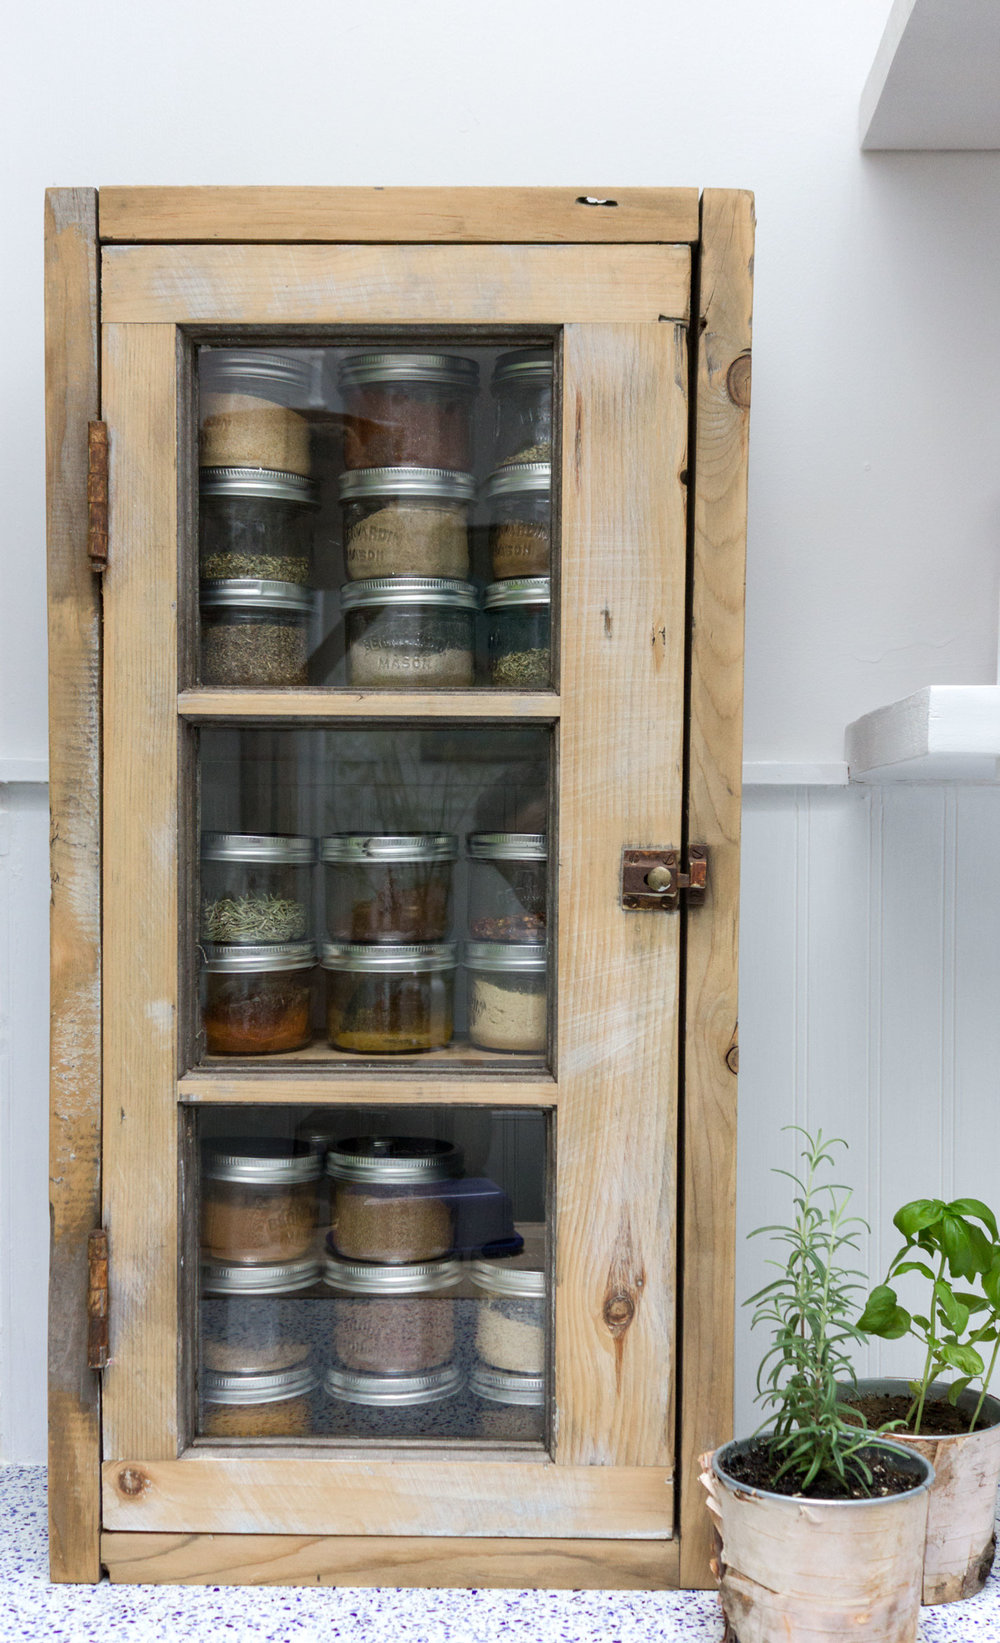 smart kitchen organization to make cooking easier